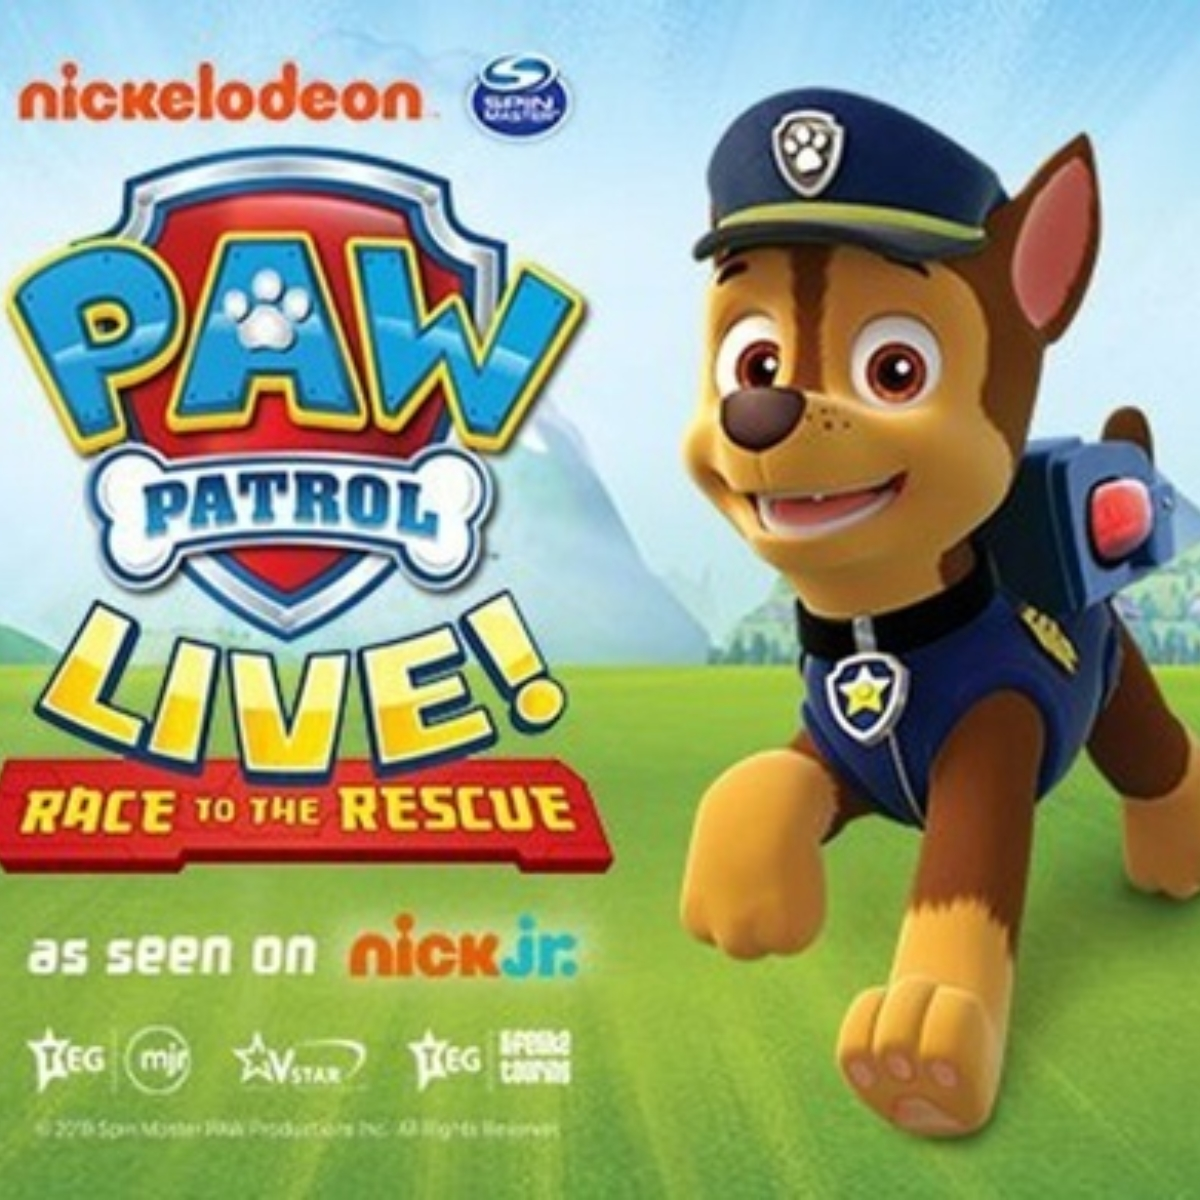 PAW PATROL LIVE! - Race to the Rescue (Cardiff) Images